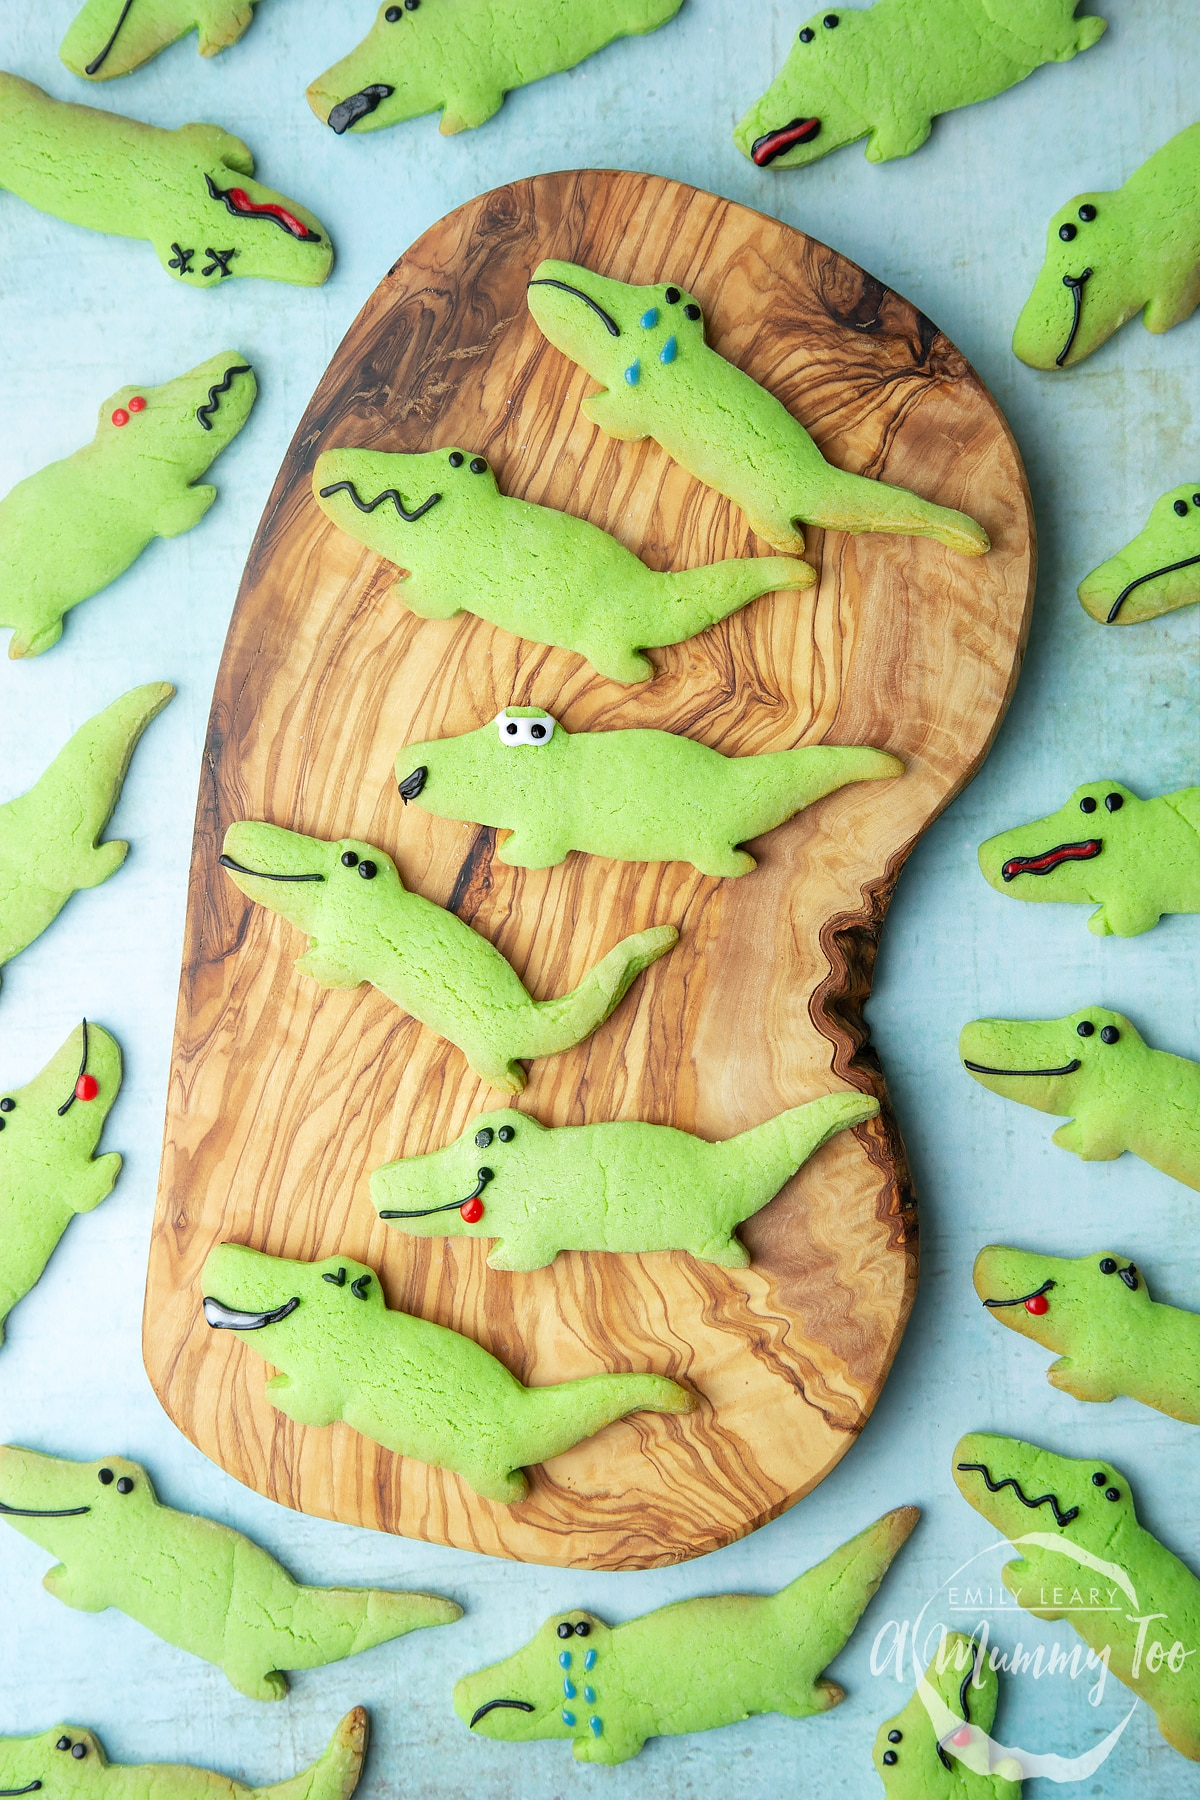 Overhead shot of green Crocodile cookies served on a wooden plate with a mummy too logo in the lower-right corner